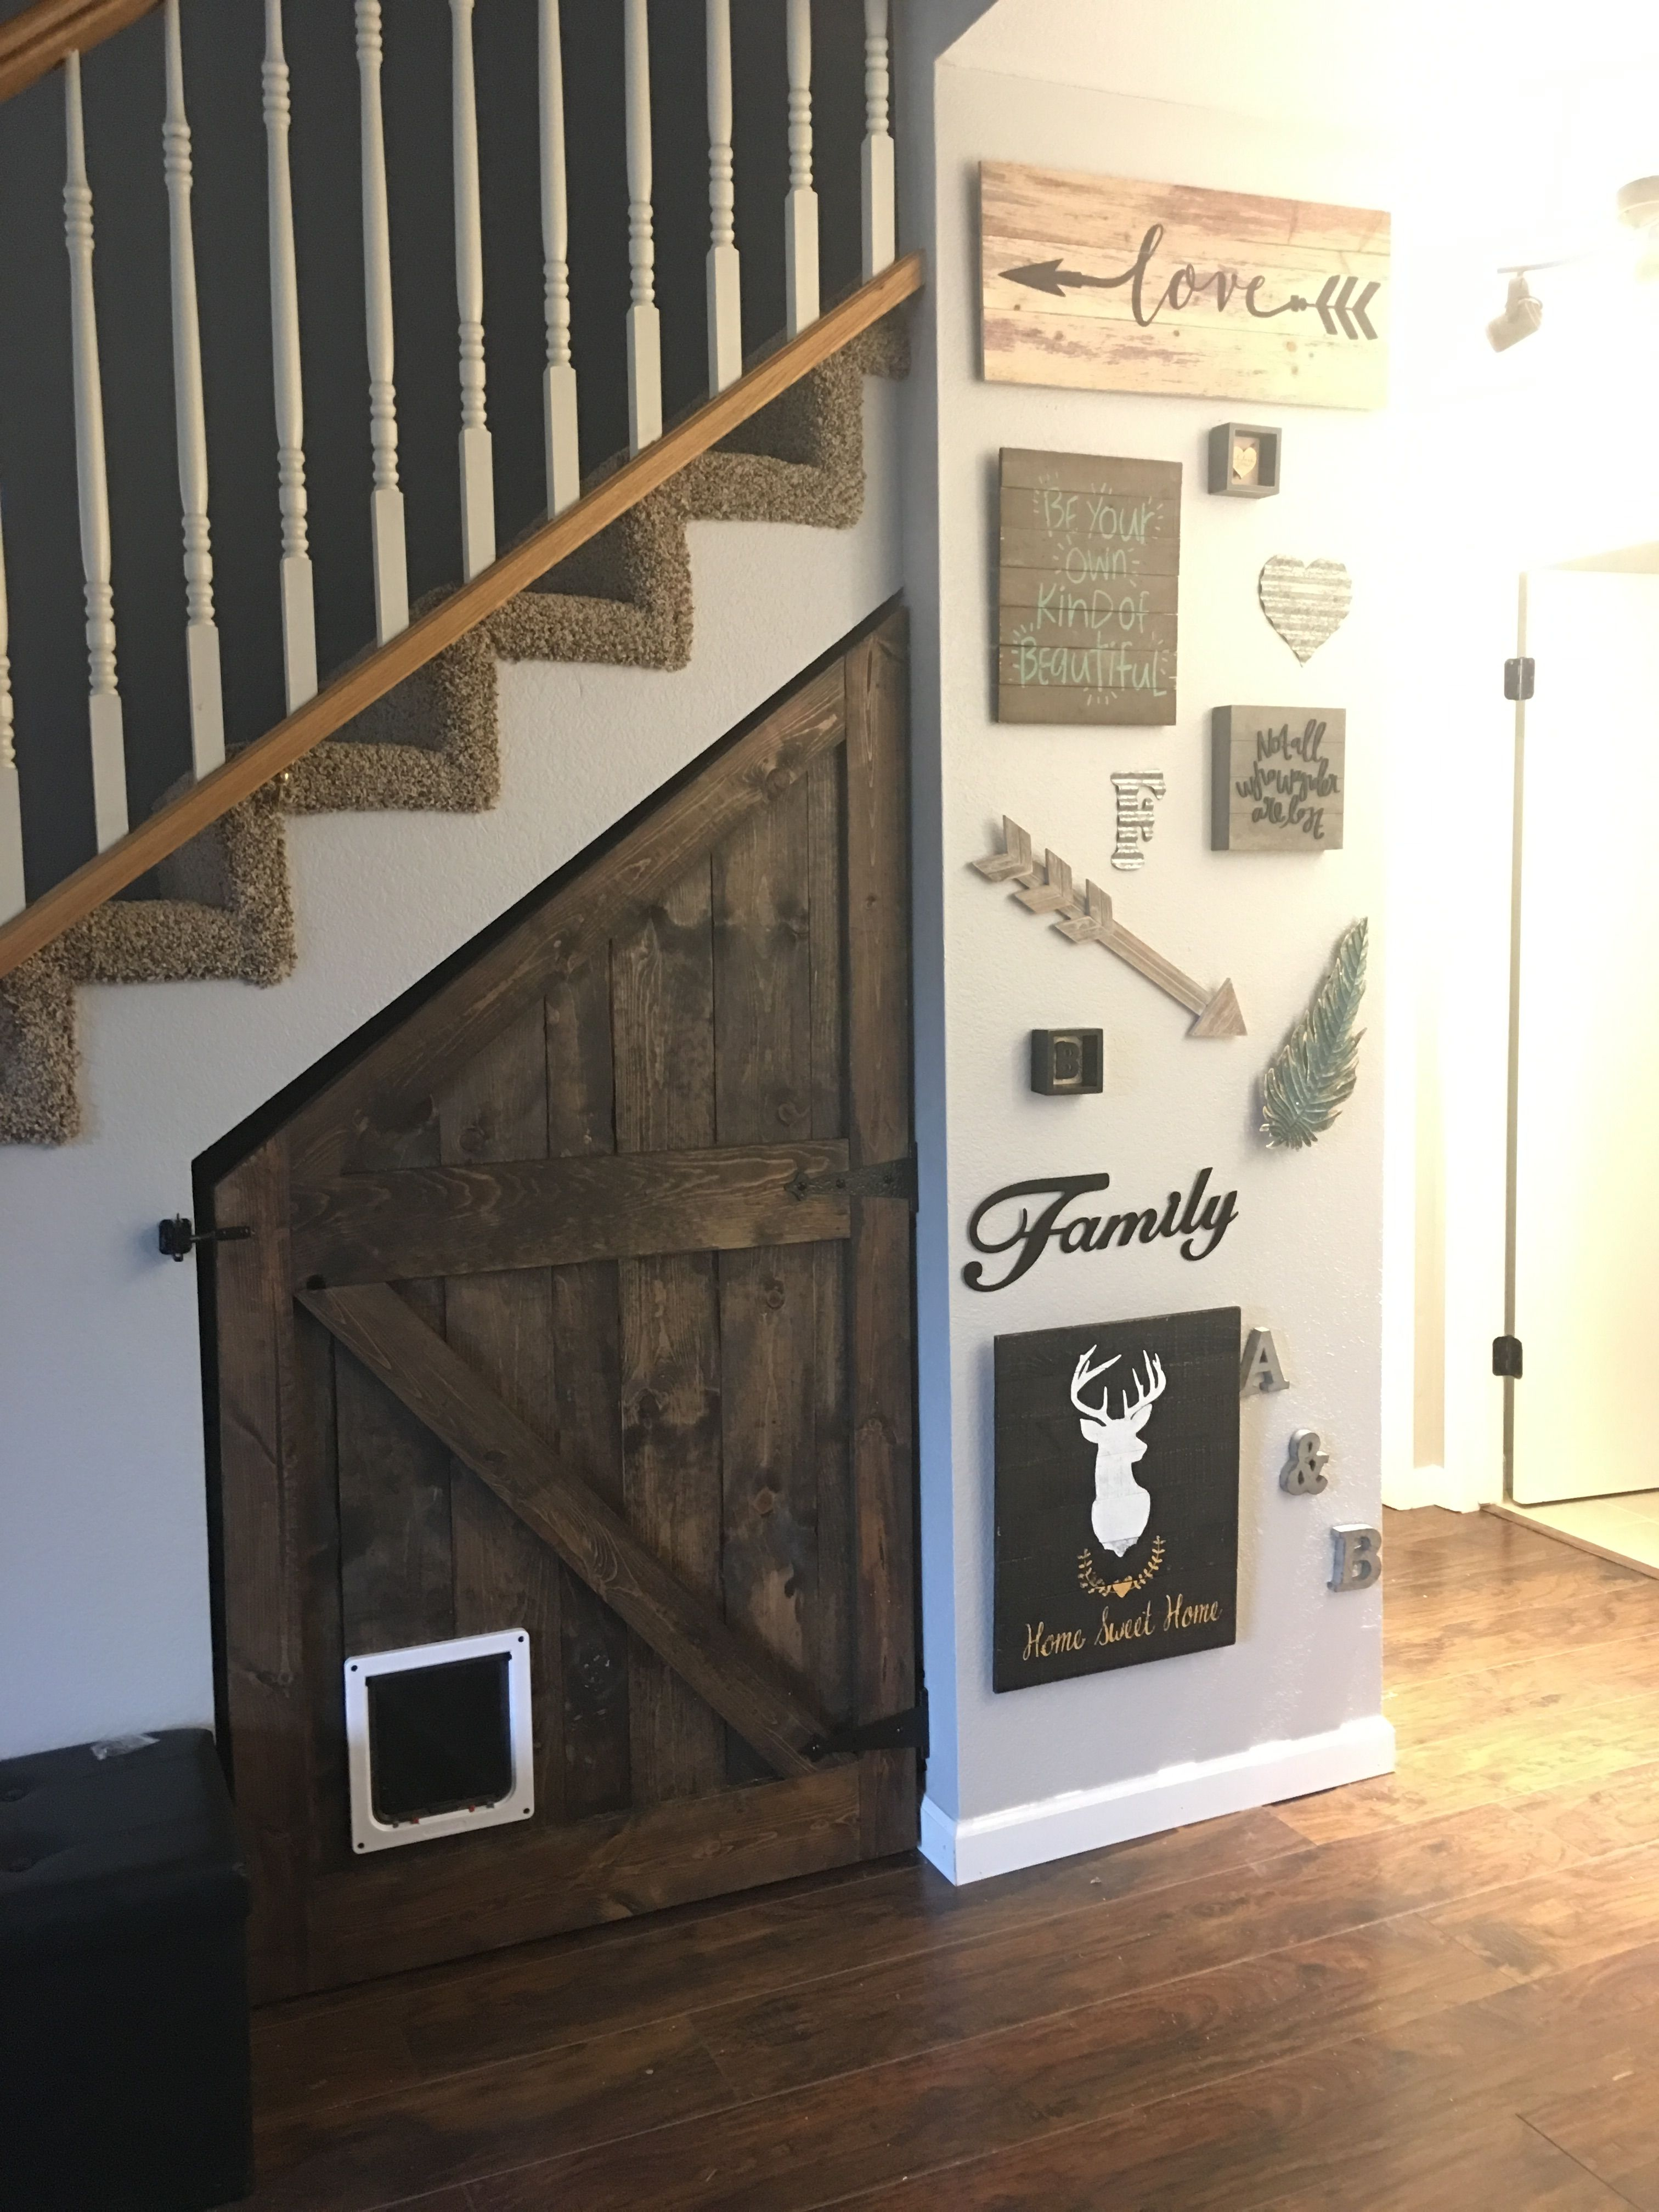 Barn Door To Cover The Awkward Space Under The Stairs